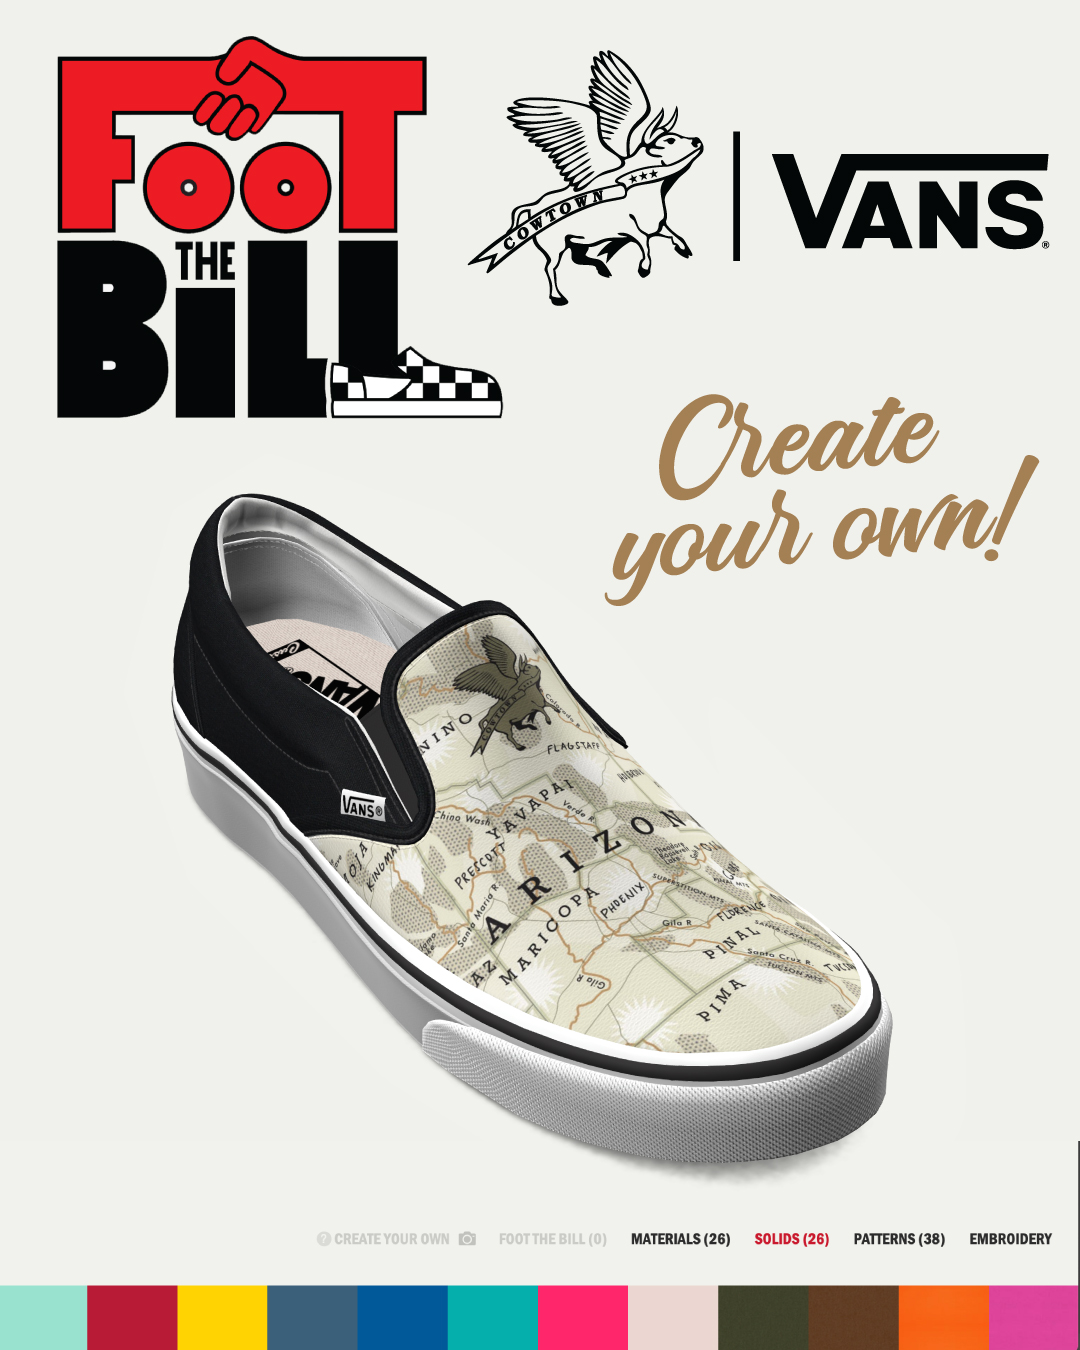 Vans Foot The Bill - Cowtown X Vans Custom Slip-On